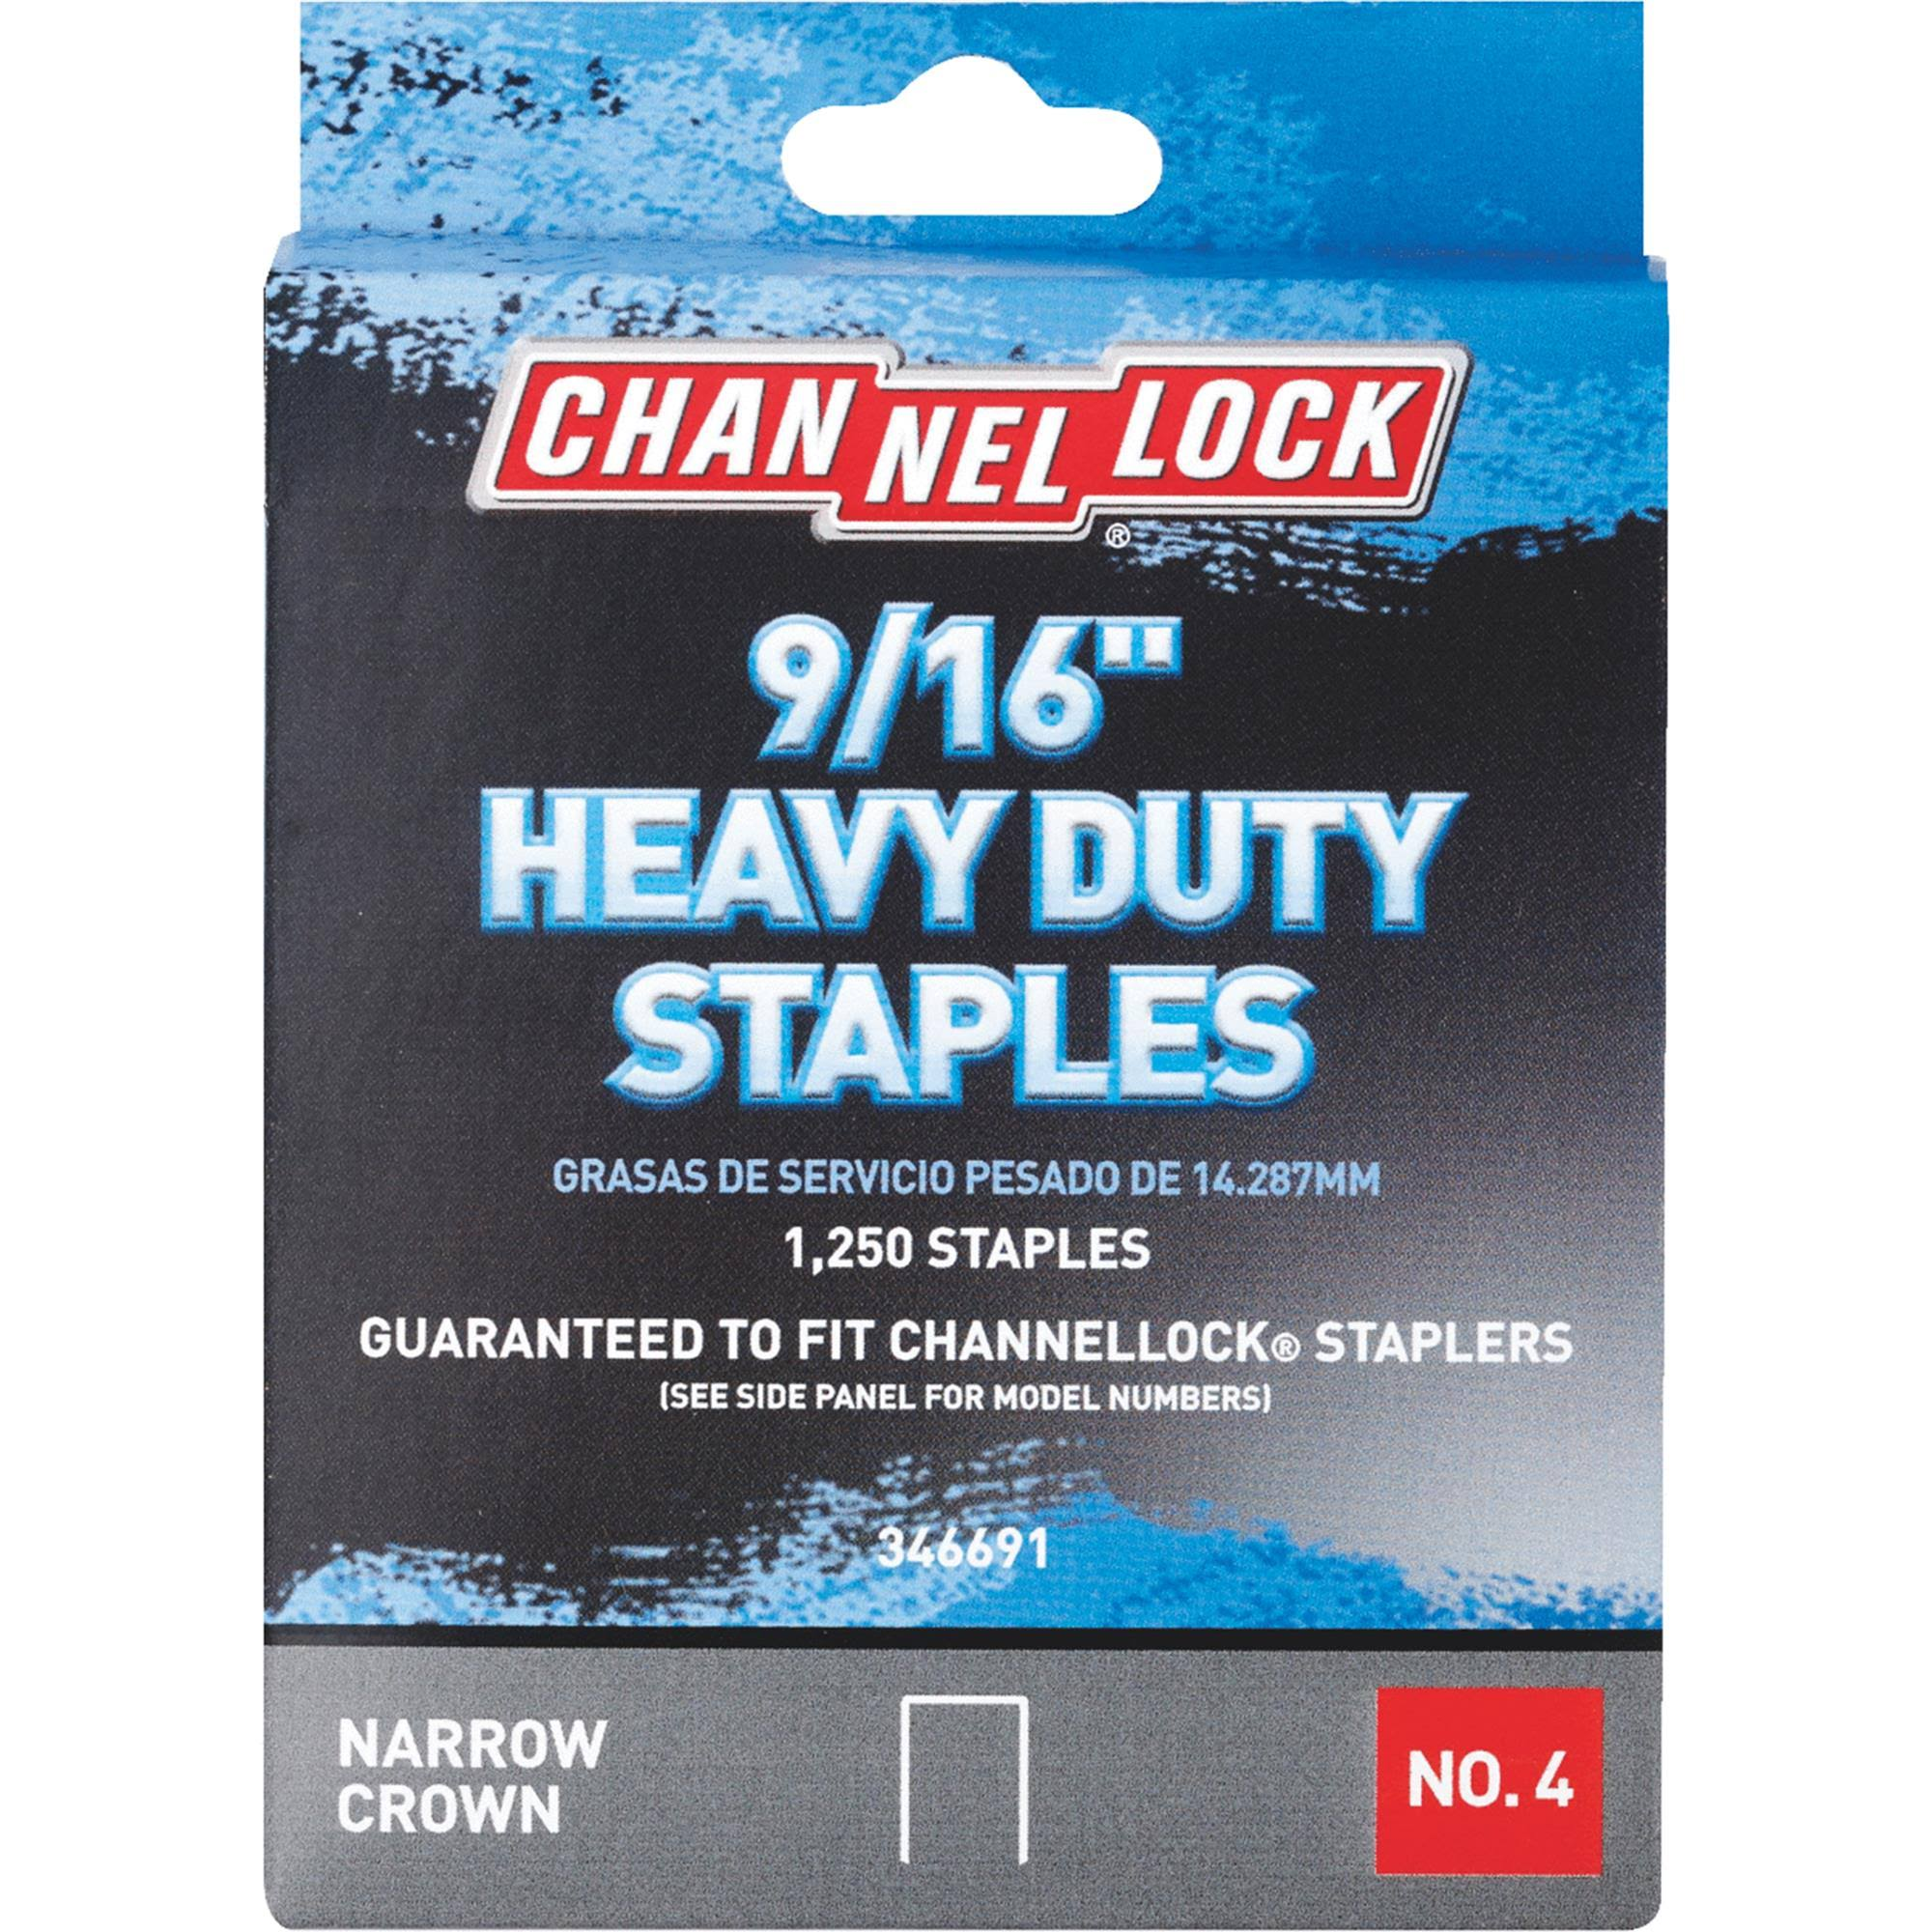 Channellock No. 4 Heavy-Duty Narrow Crown Staple 346691